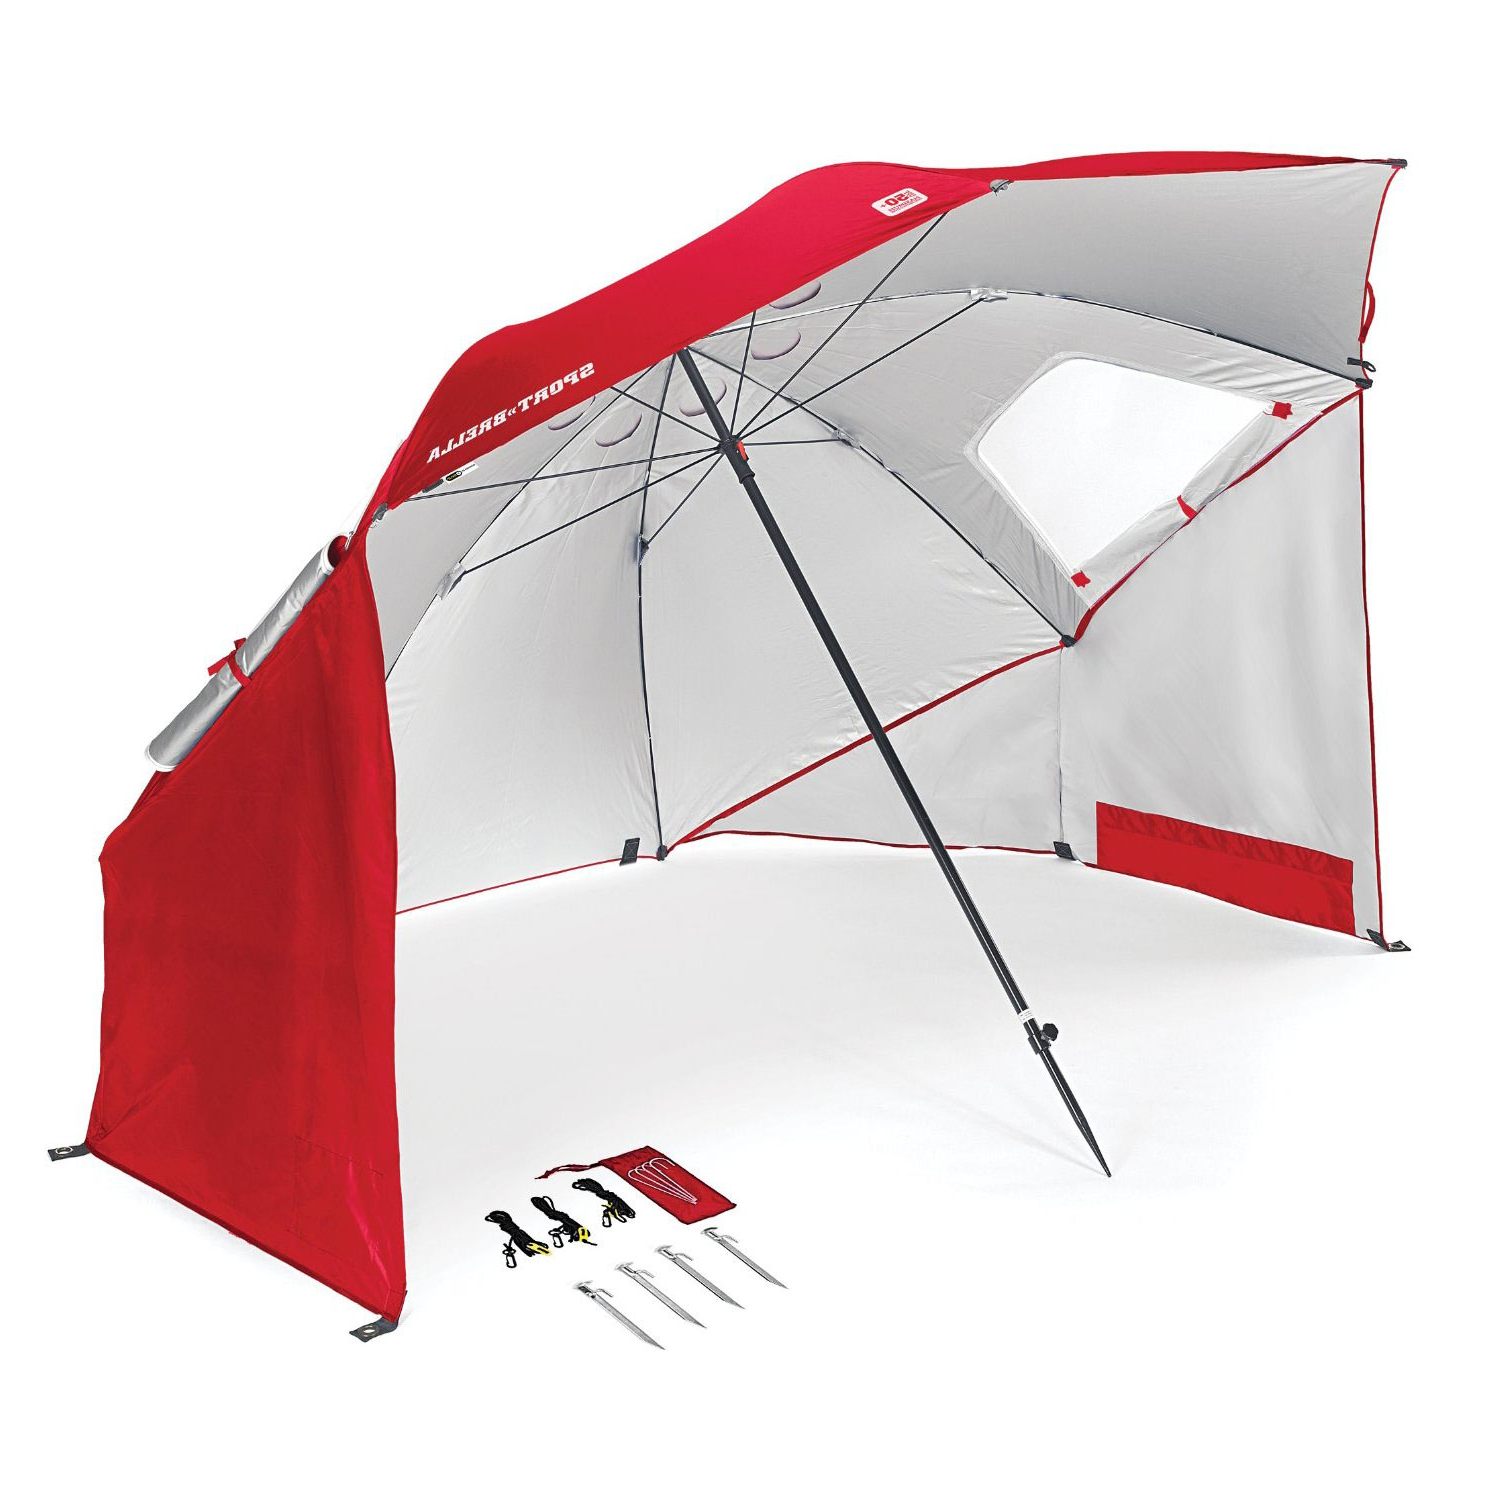 Sun Shelter Beach Umbrellas Regarding 2019 Best Beach Umbrella – Reviews & Buying Guide (August 2019) (View 14 of 20)